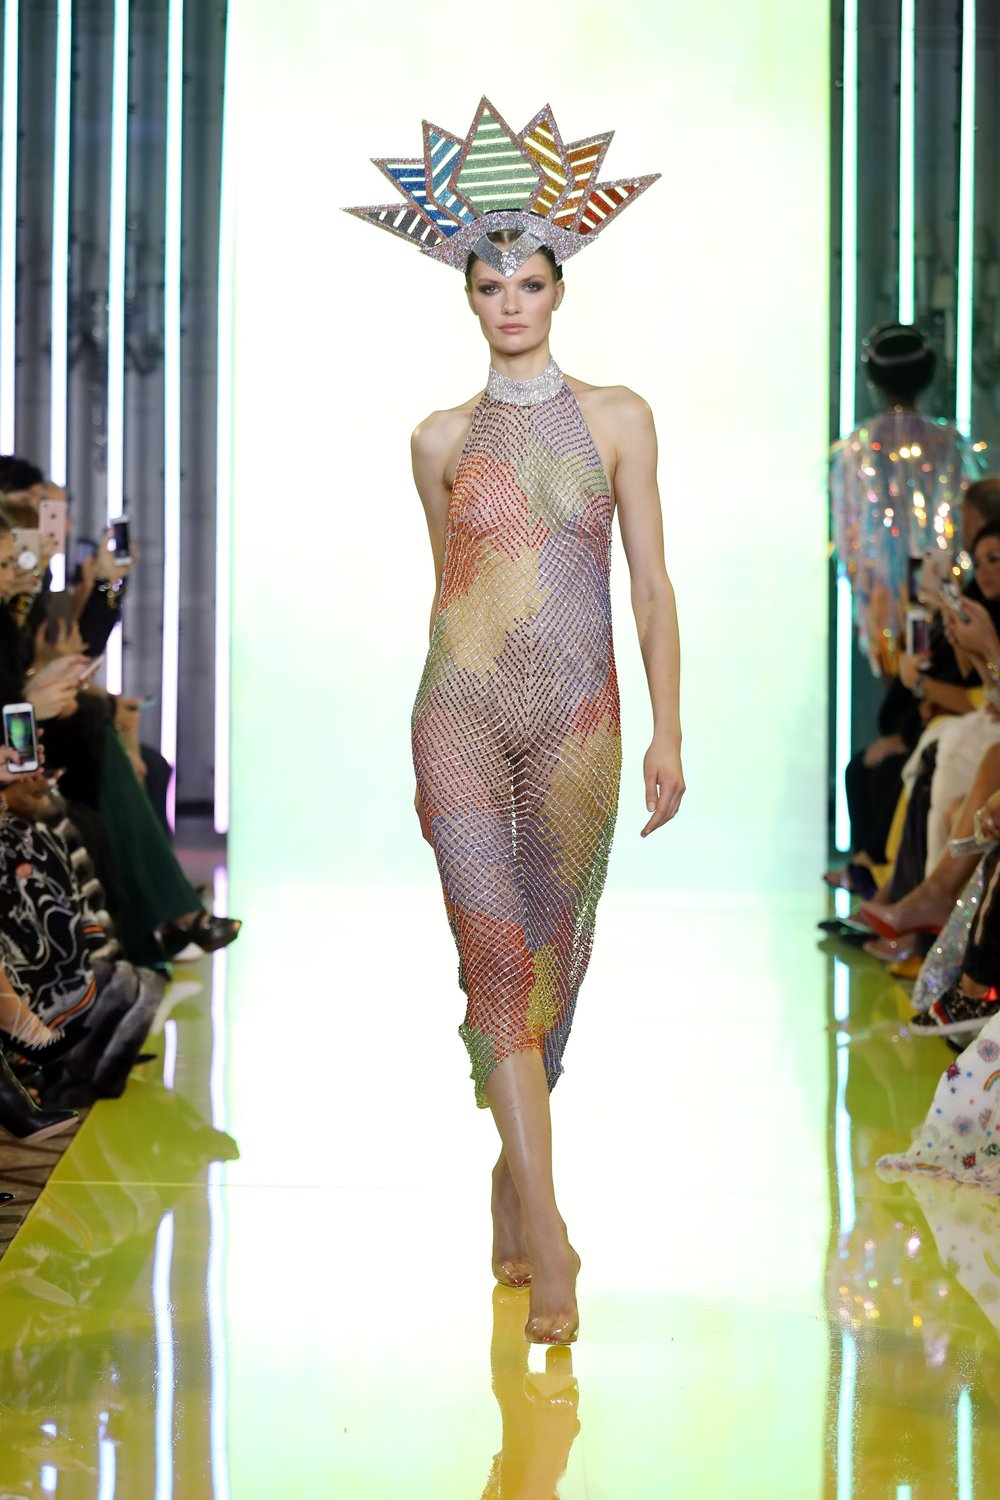 SS19-3 Rainbow Colored Fishnet Dress Embellished Wth Swarovski Crystals Featuring A Highlighted Neckline Of Silver Crystals  .jpg